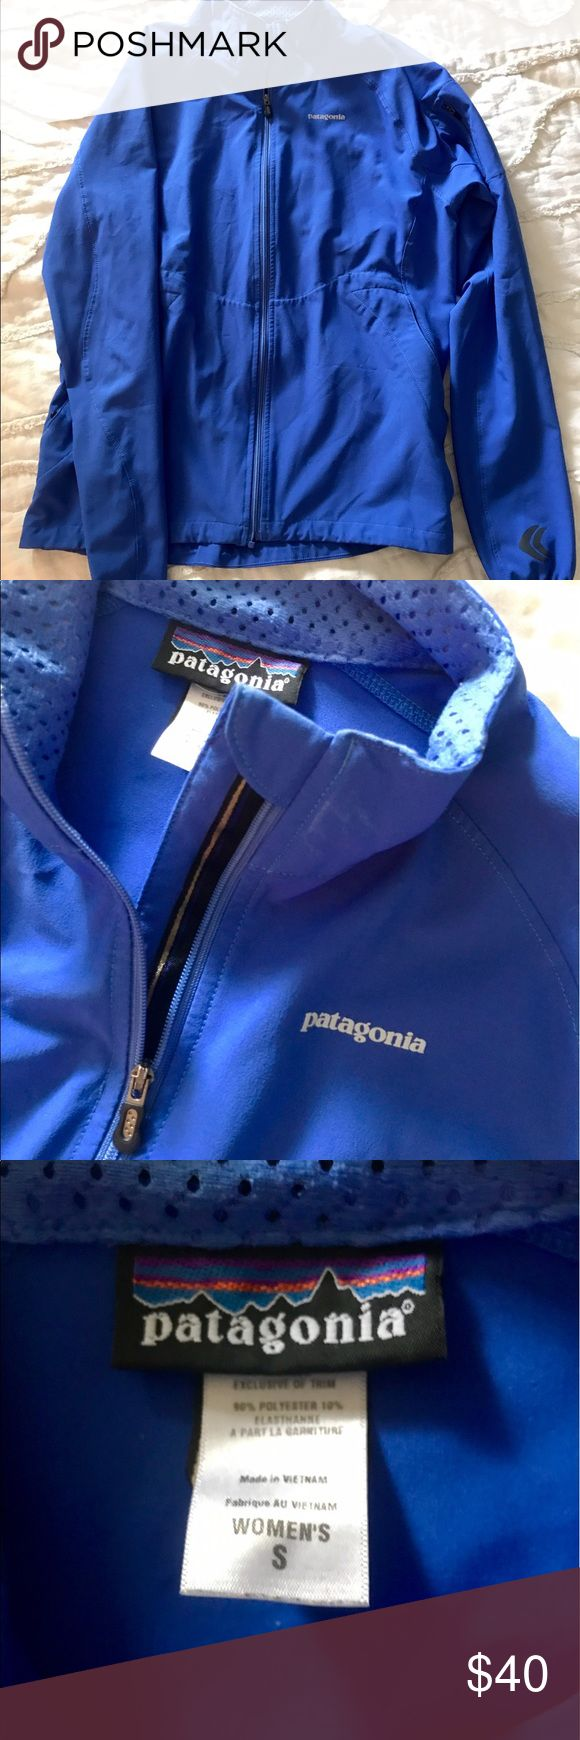 Patagonia Full Zip rain/ lightweight jacket This is a royal blue Patagonia jacket. It is 90% polyester and 10% elasthanne. It's perfect for chilly weather or the rain. It has a small detail pocket on the sleeve and deep pockets on the front of the jacket. This jacket is very breathable and can be worn year round! Patagonia Jackets & Coats Utility Jackets